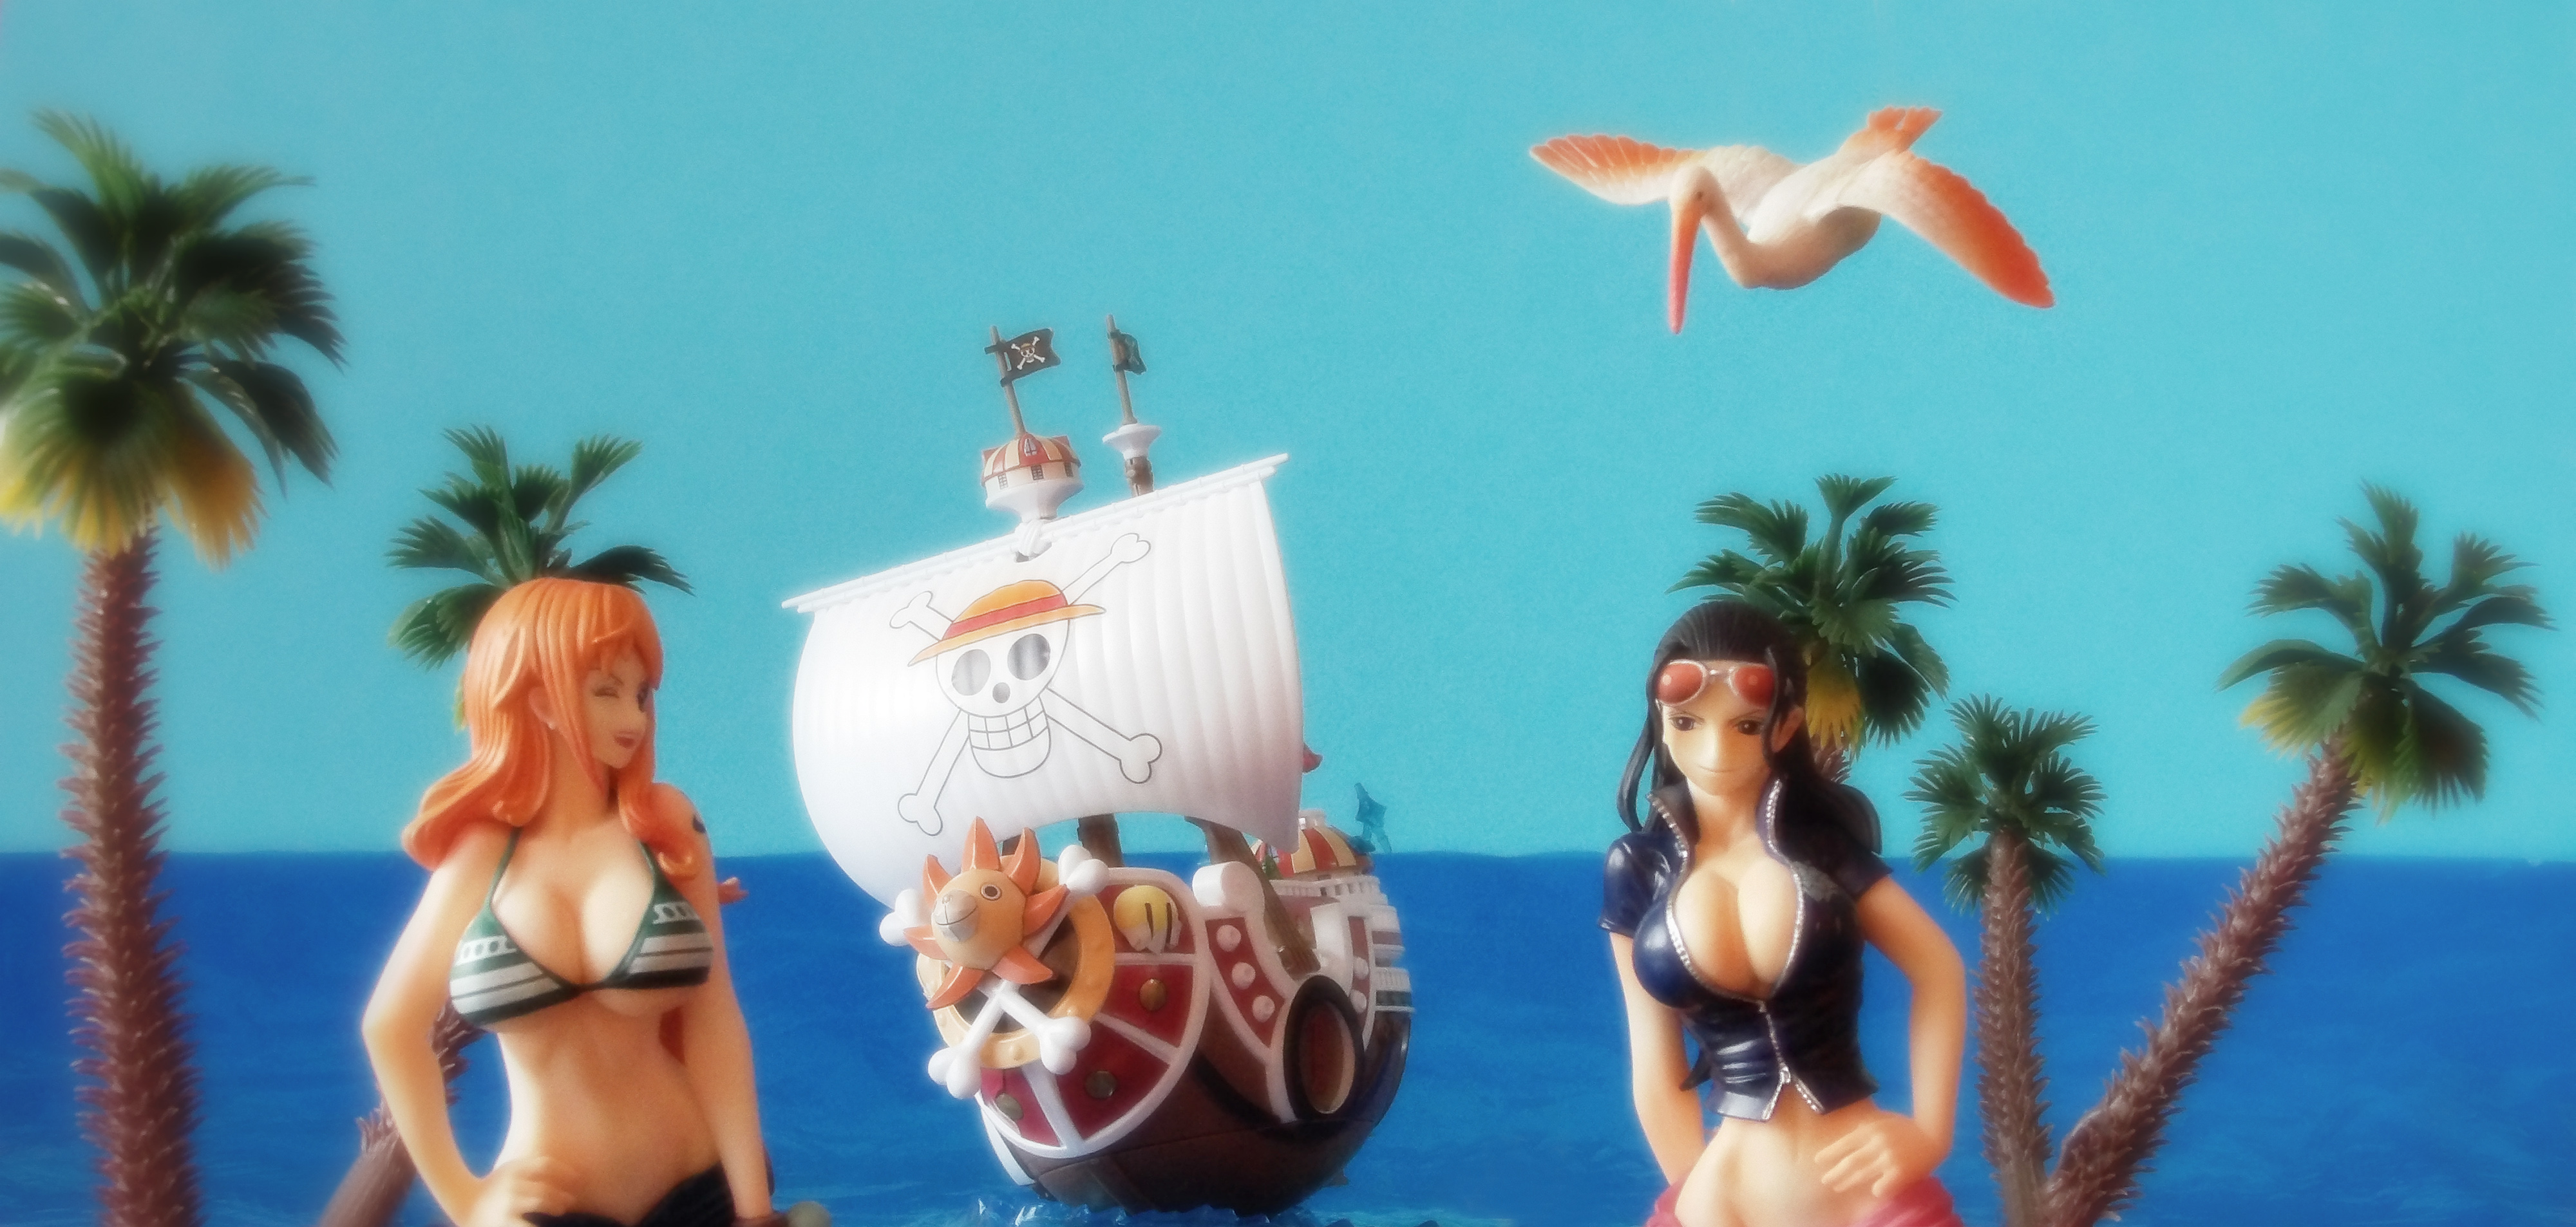 nico_robin one_piece_grand_ship_collection bandai thousand_sunny one_piece sentinel hook nami